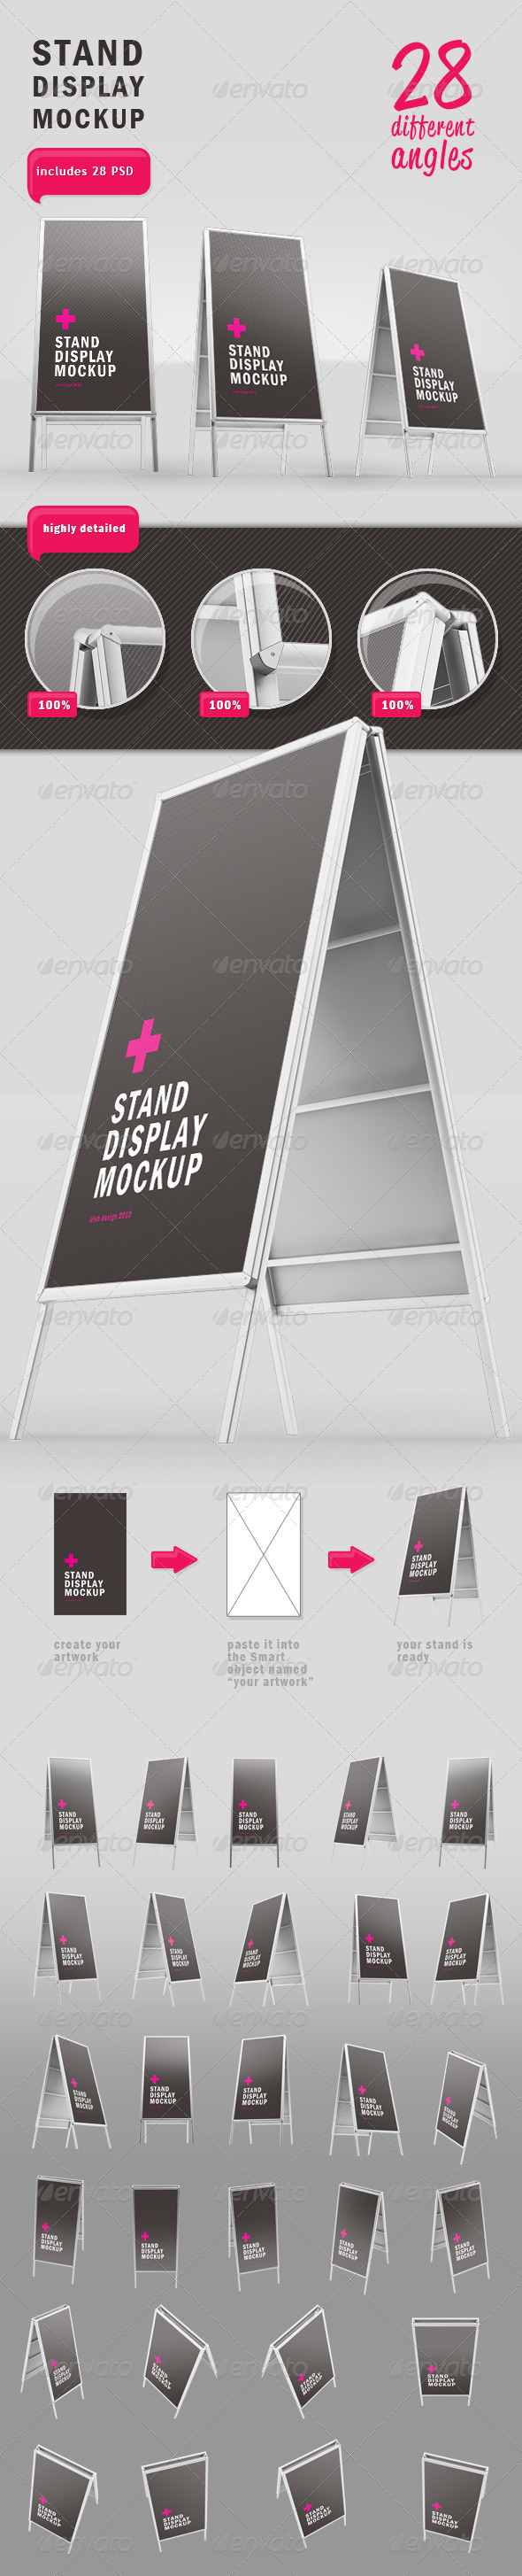 Stand Display Mockup 28 Different Angles - Signage Print